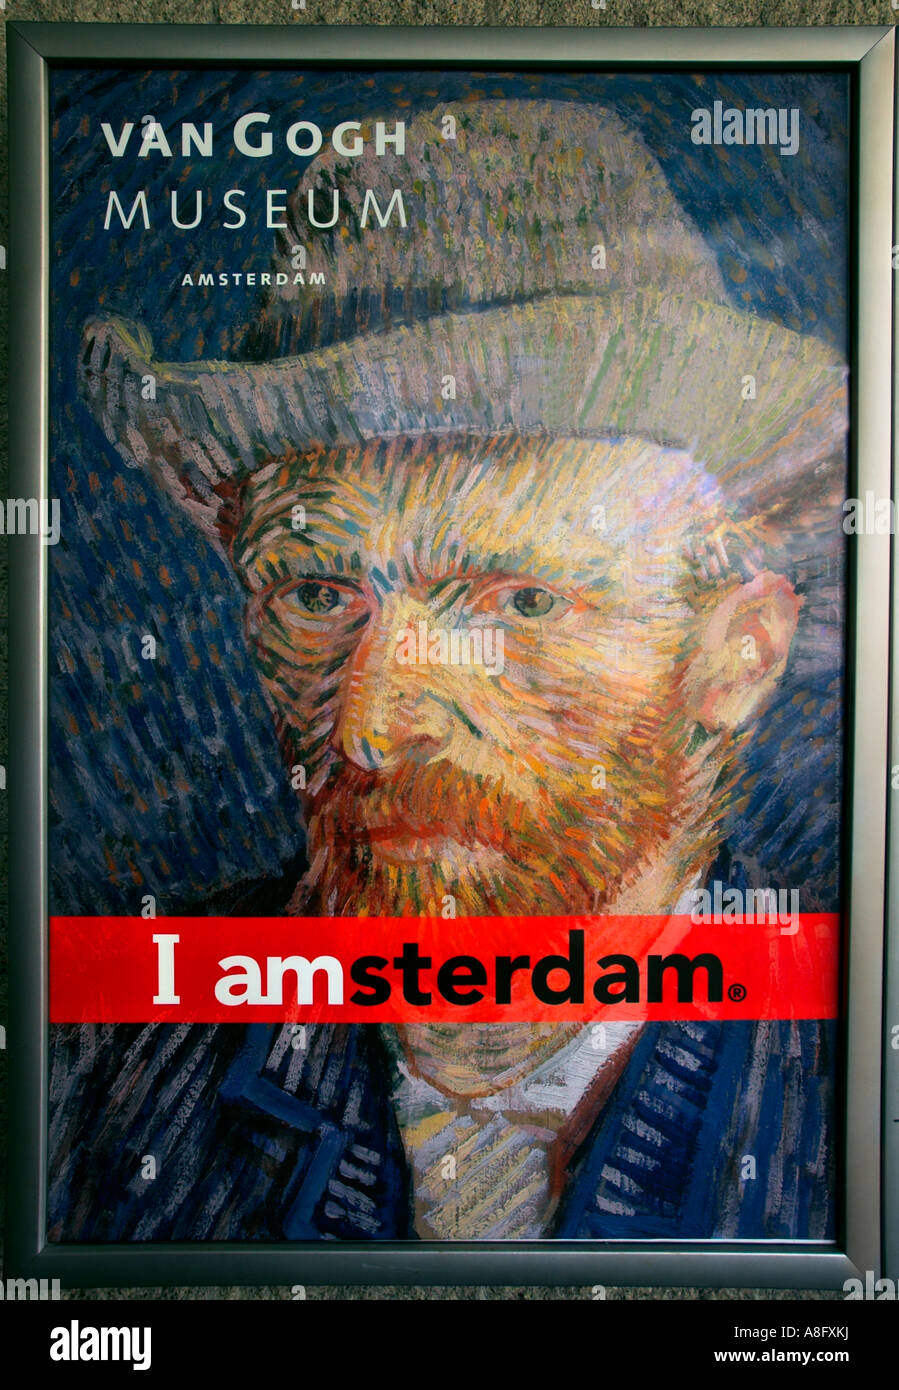 A poster with a portrait of Van Gogh advertising the Van Gogh ...